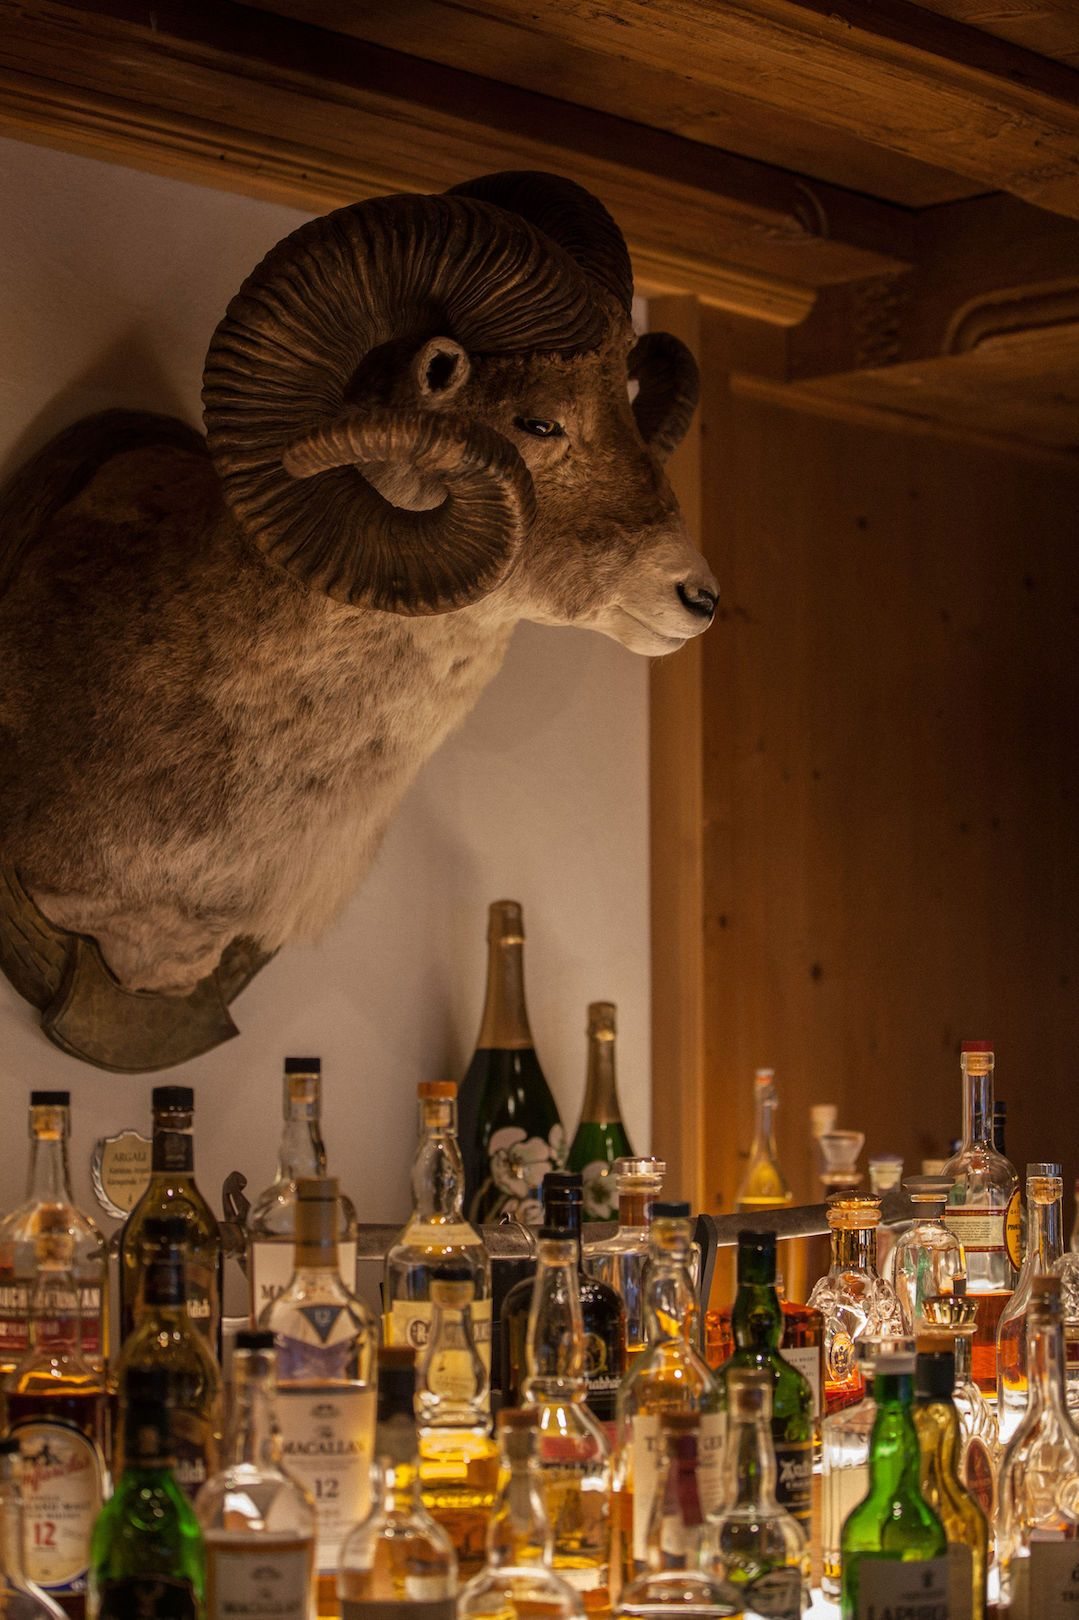 the bar at Hotel Arlberg in Lech am Arlberg in Austria